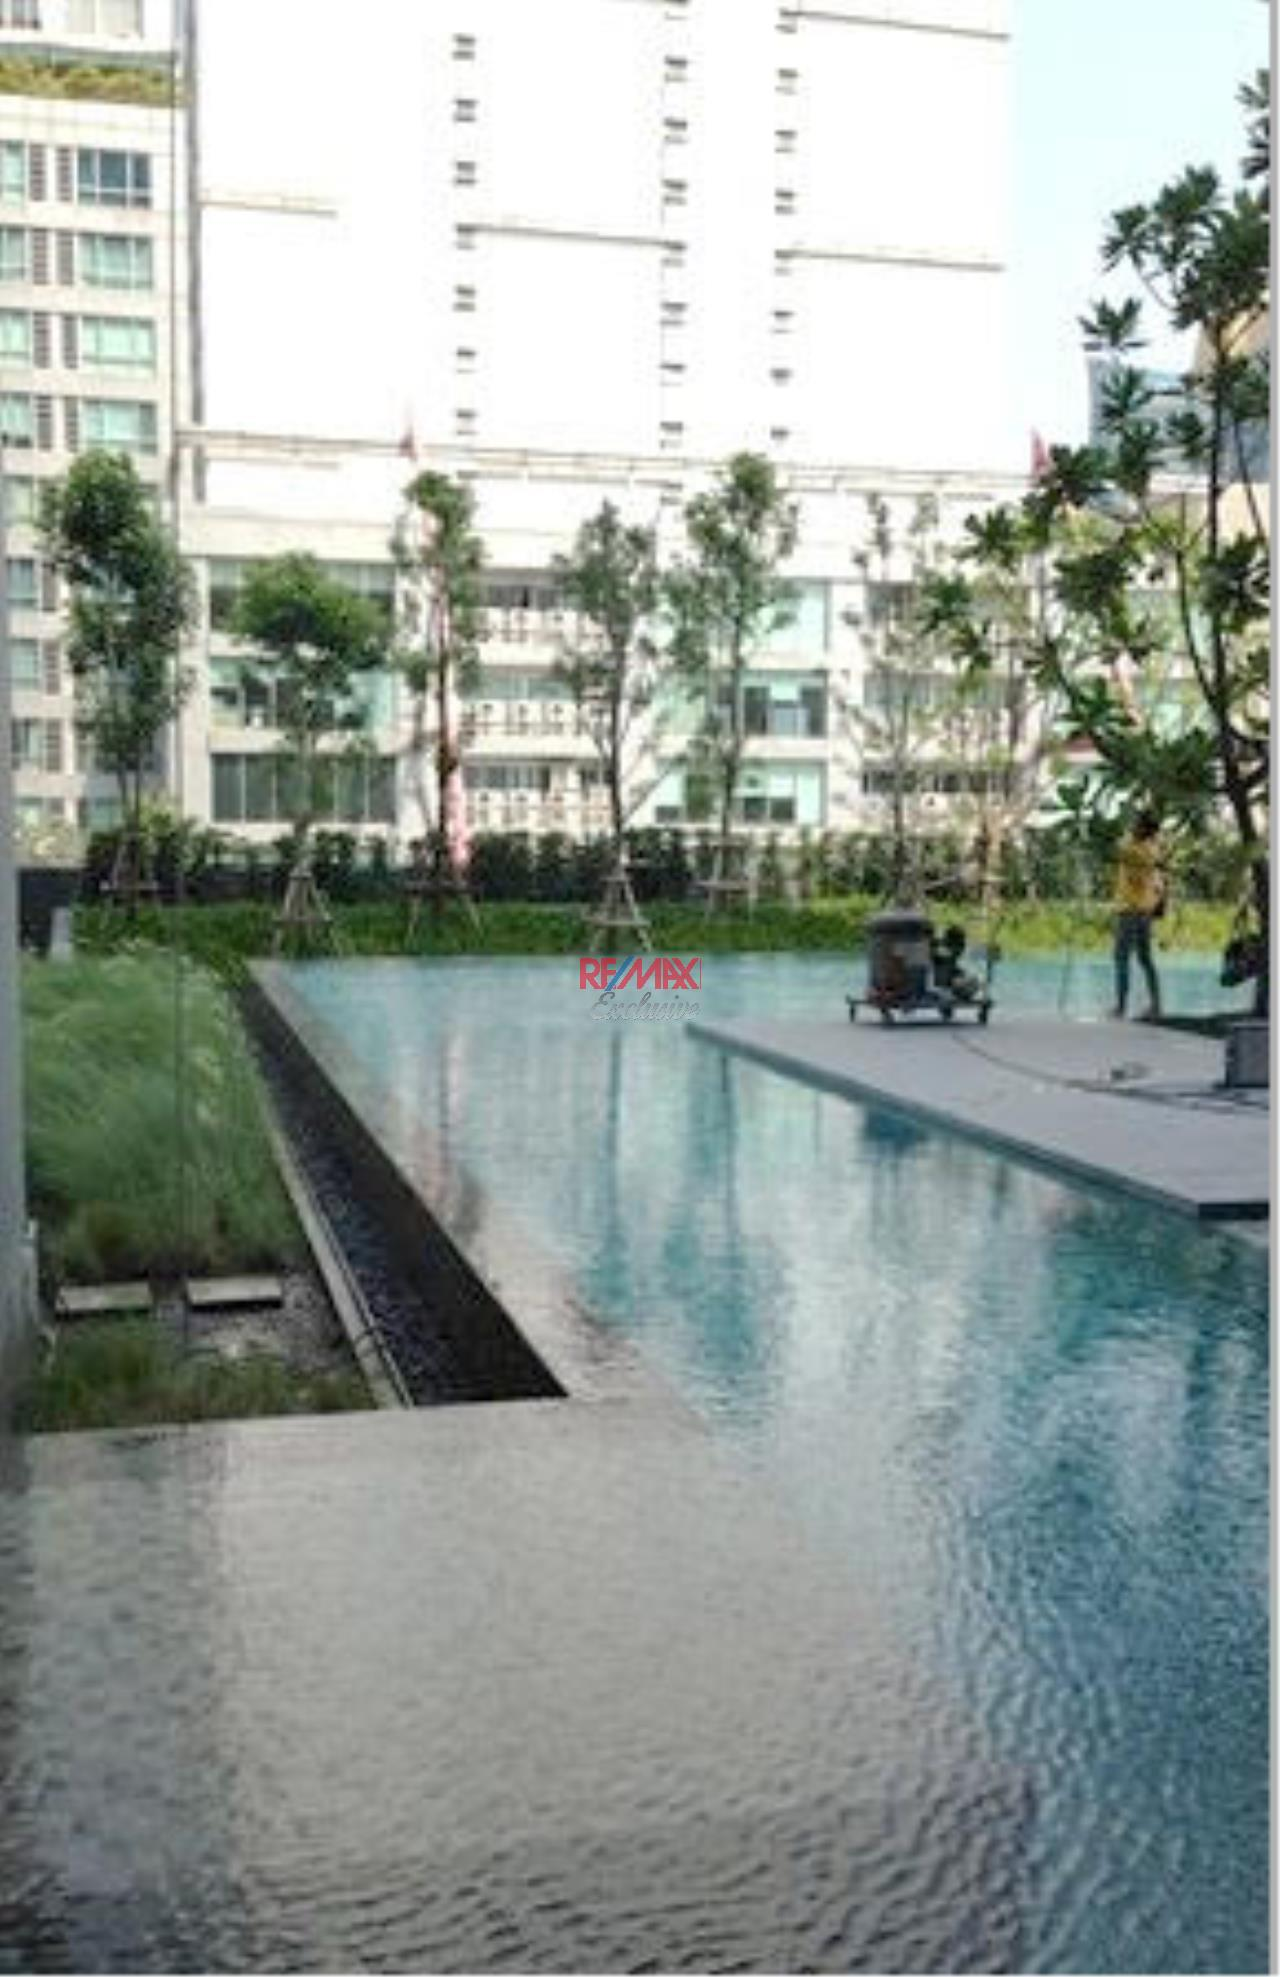 RE/MAX Exclusive Agency's Condominium in town For Rent 40,000 THB  7